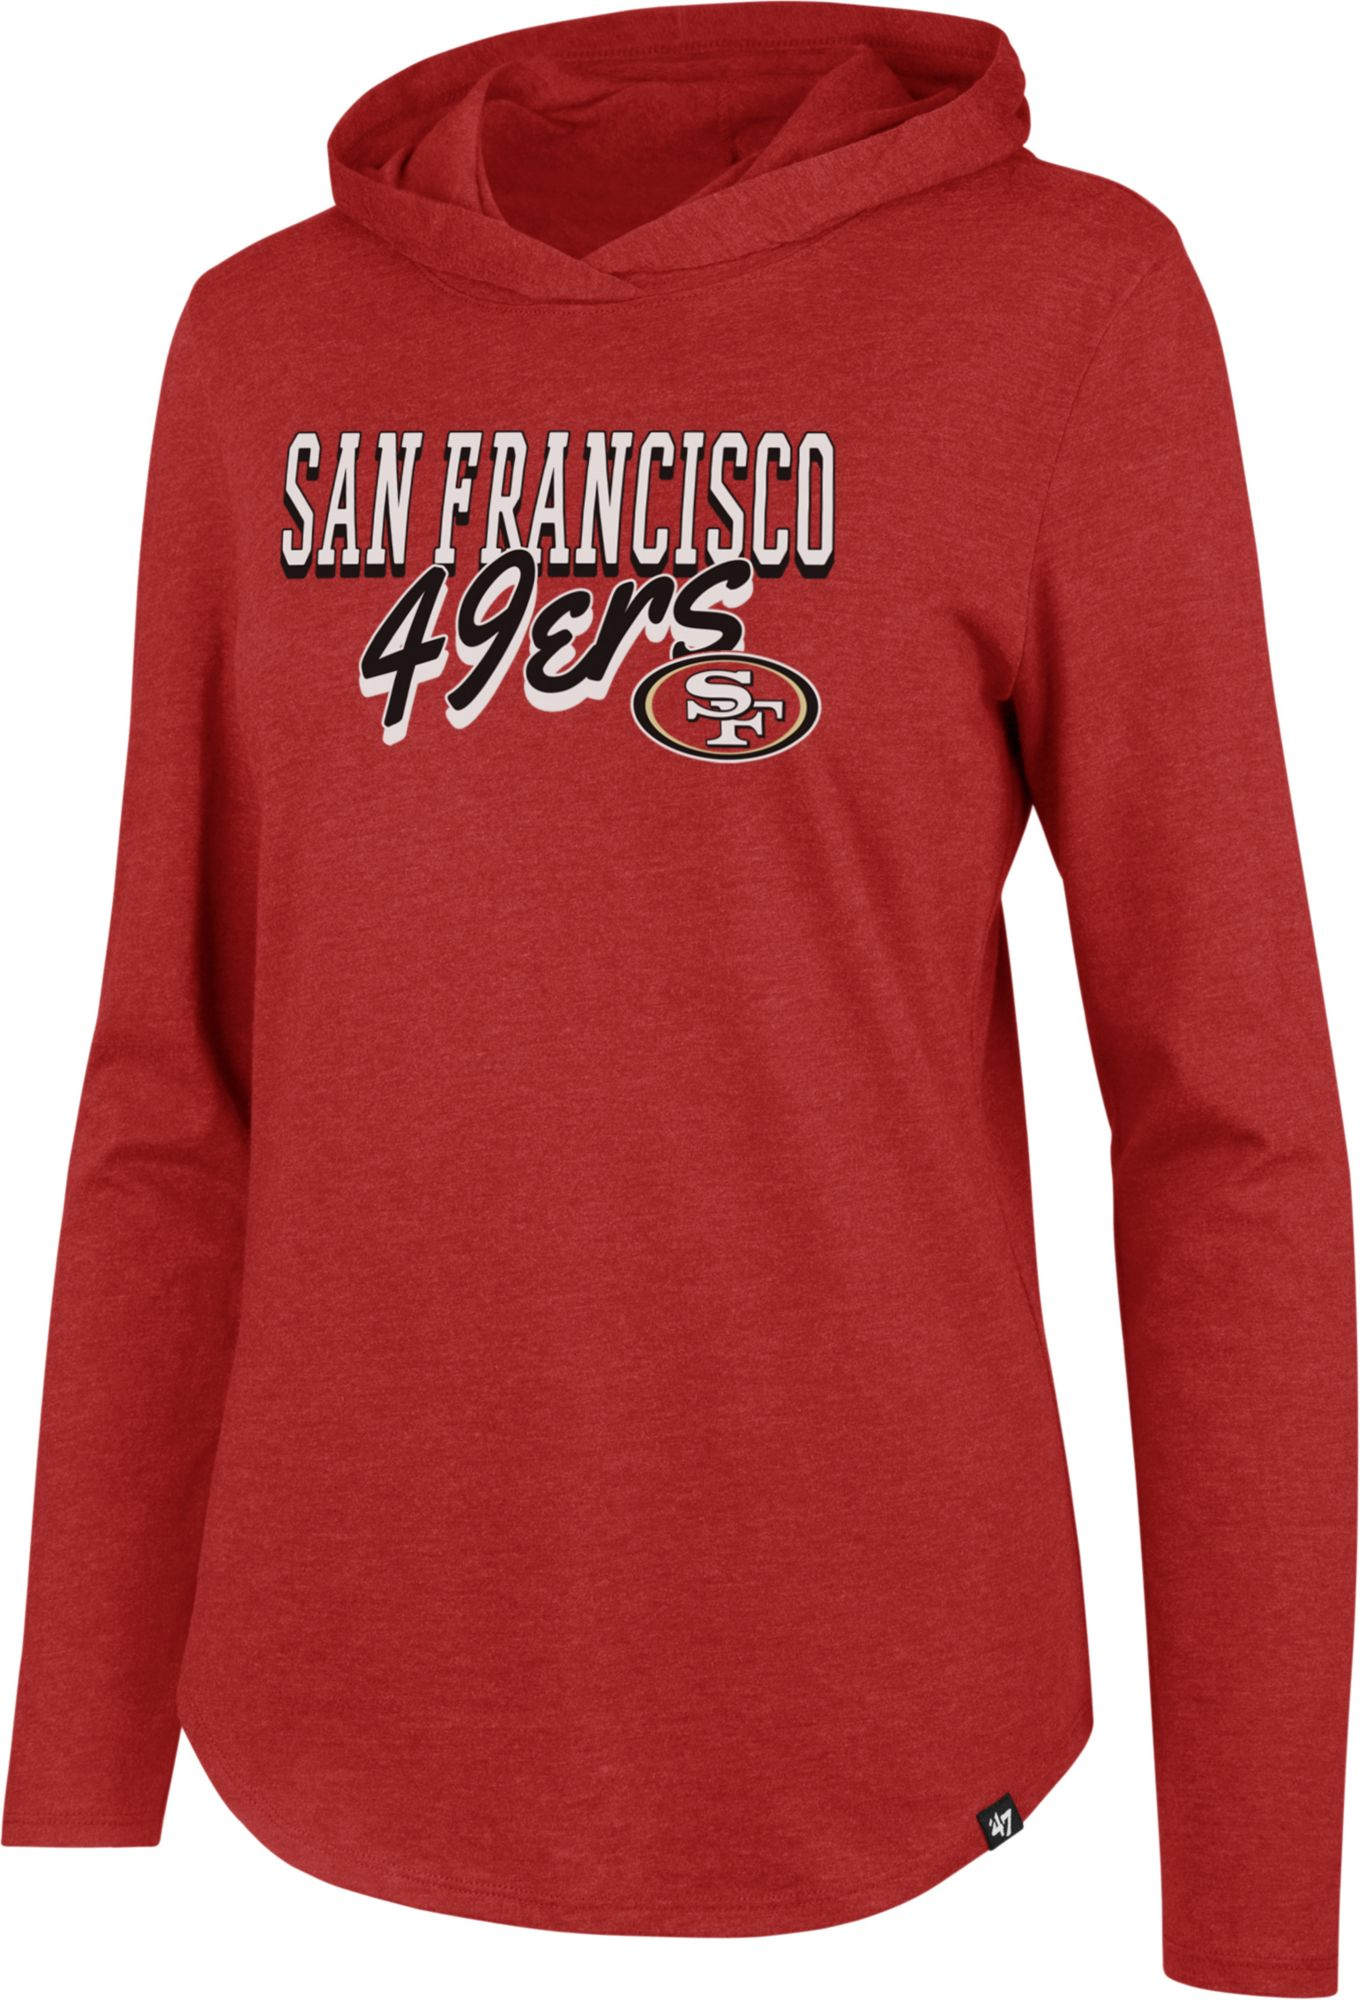 3a5dec8f '47 Women's San Francisco 49ers Club Red Hooded Long Sleeve Shirt